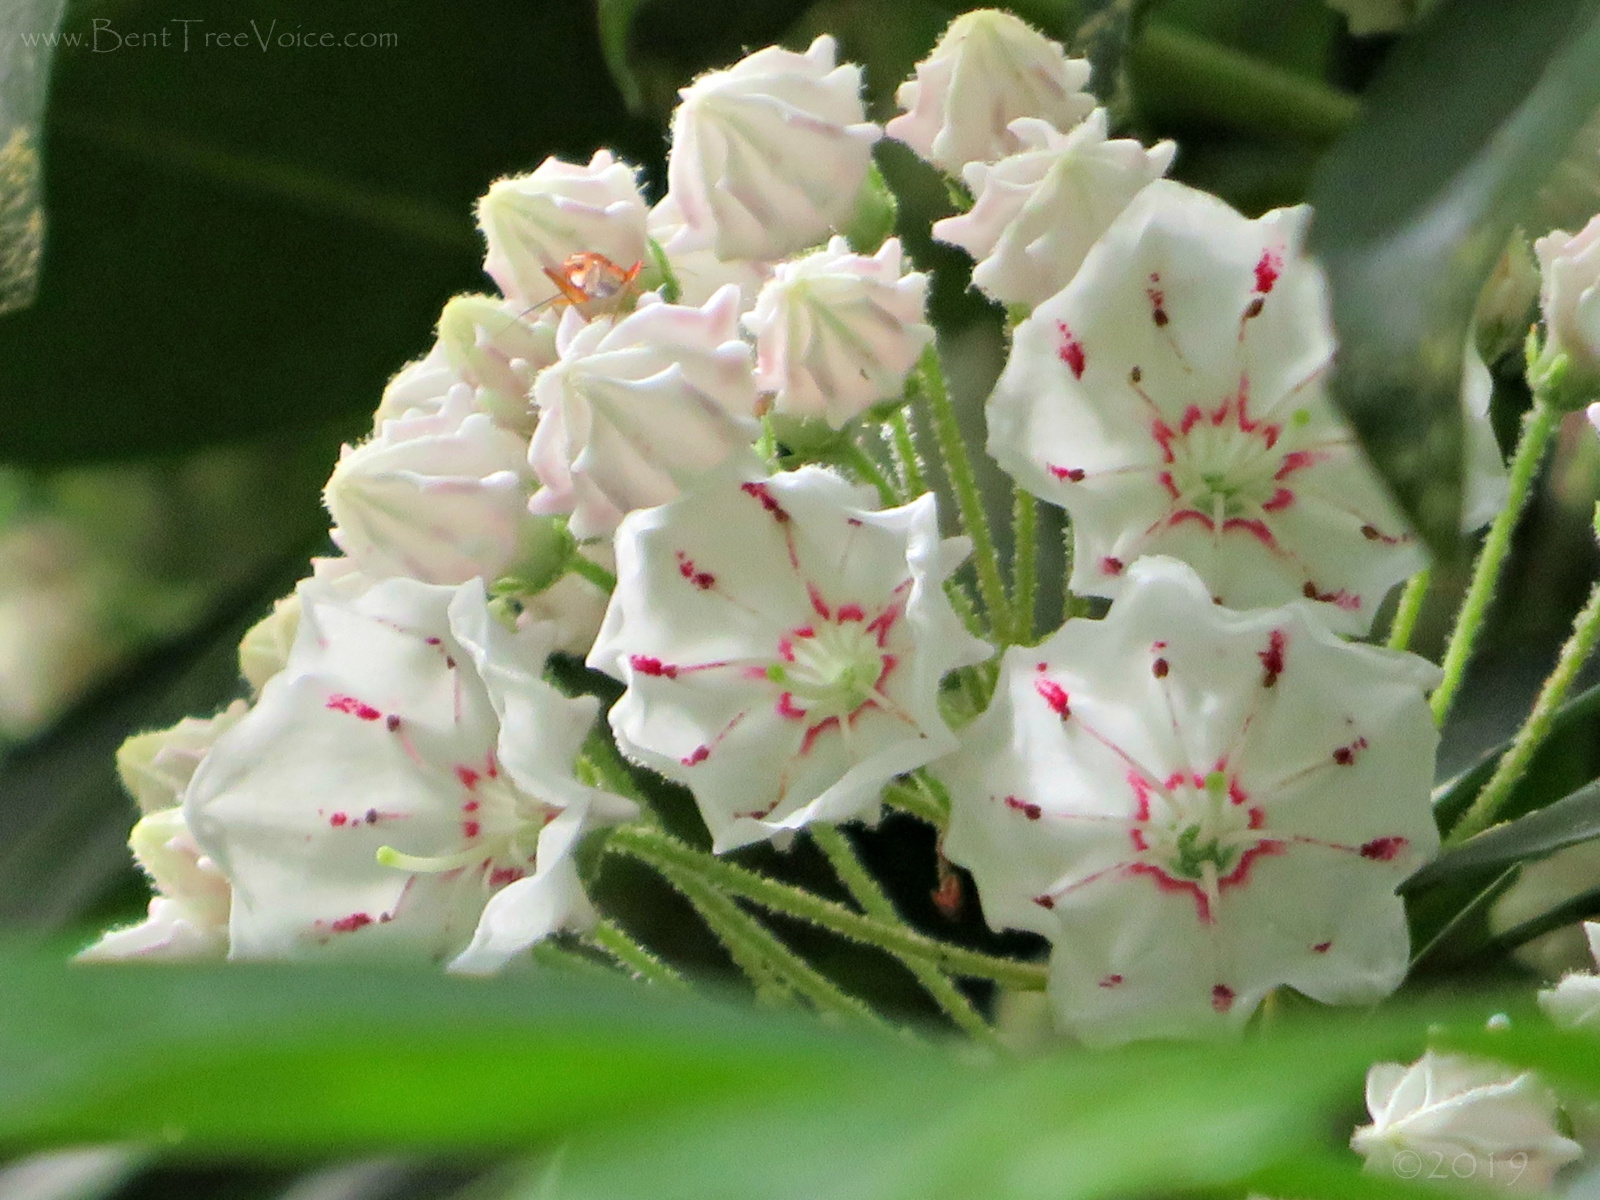 May 4, 2019 - Mountain Laurel in Bent Tree